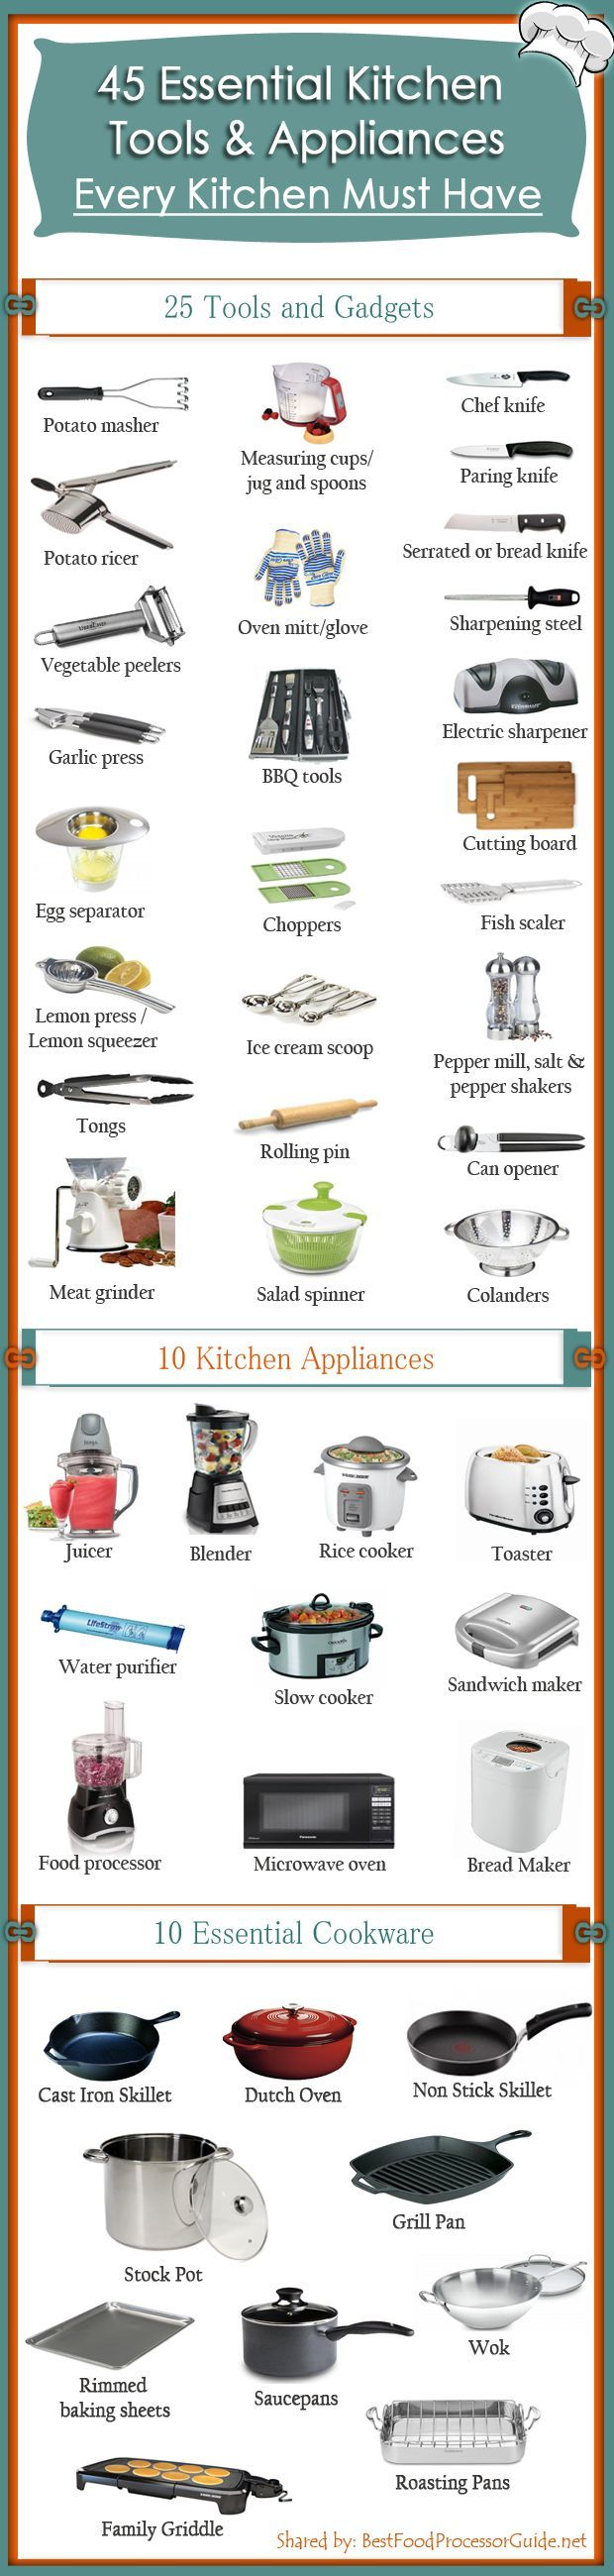 45 Essential Kitchen Tools and Appliances  Every Kitchen Must Have.  Designed by - BDHire